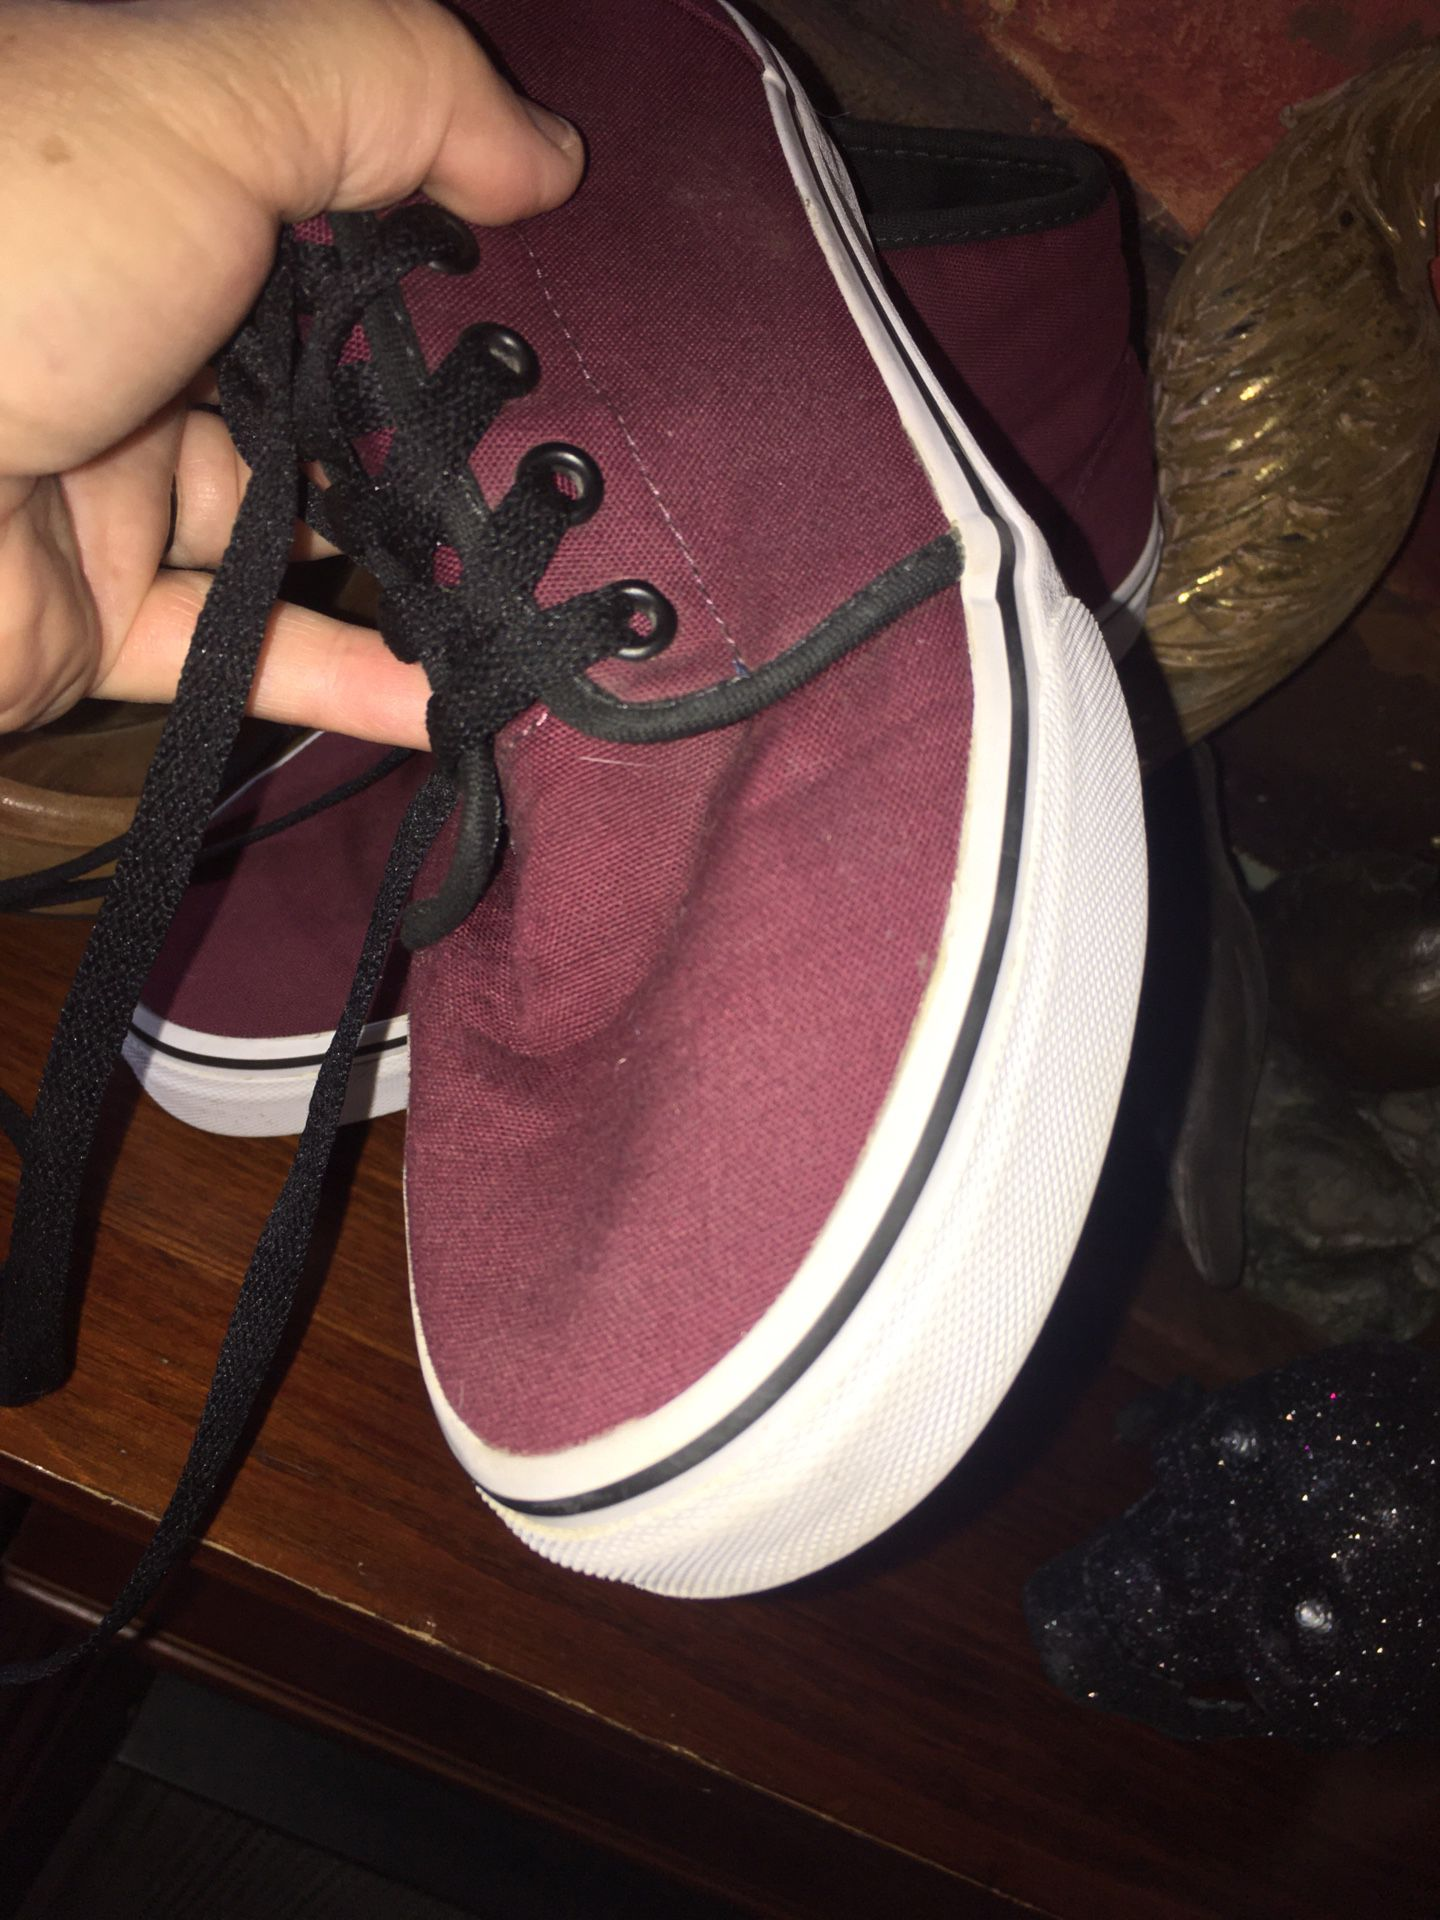 Vans of the wall cool burgundy semi new shoes in perfect clean condition size men's 6 women's 8